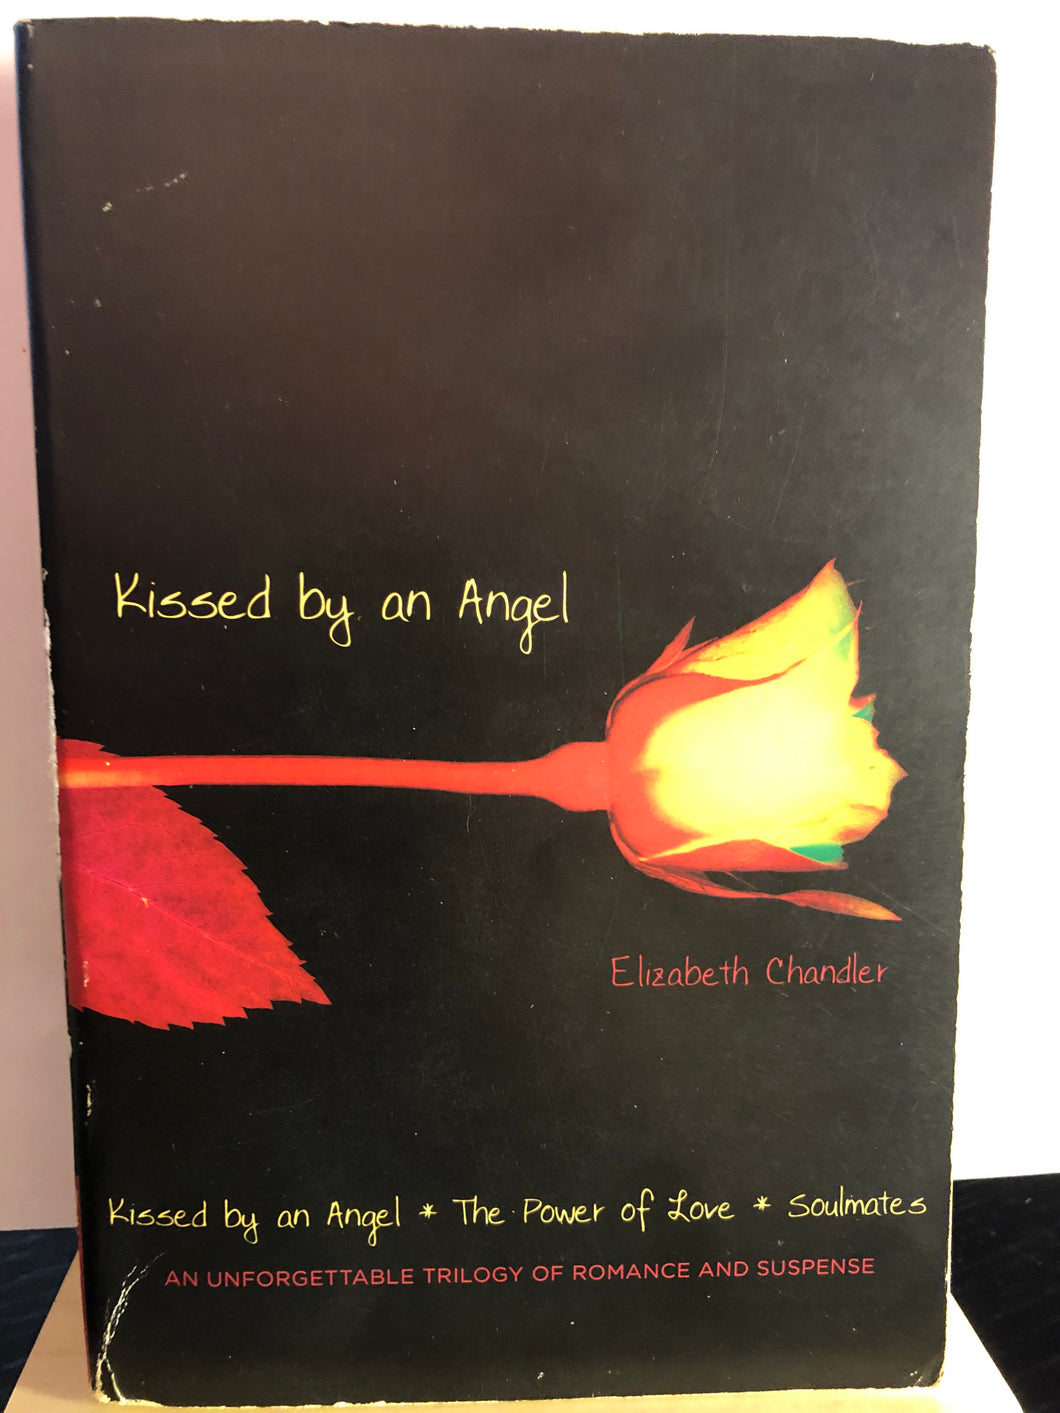 Kissed by an Angel/The Power of Love/Soulmates (Combined)  by Elizabeth Chandler   (Kissed by an Angel #1-3)